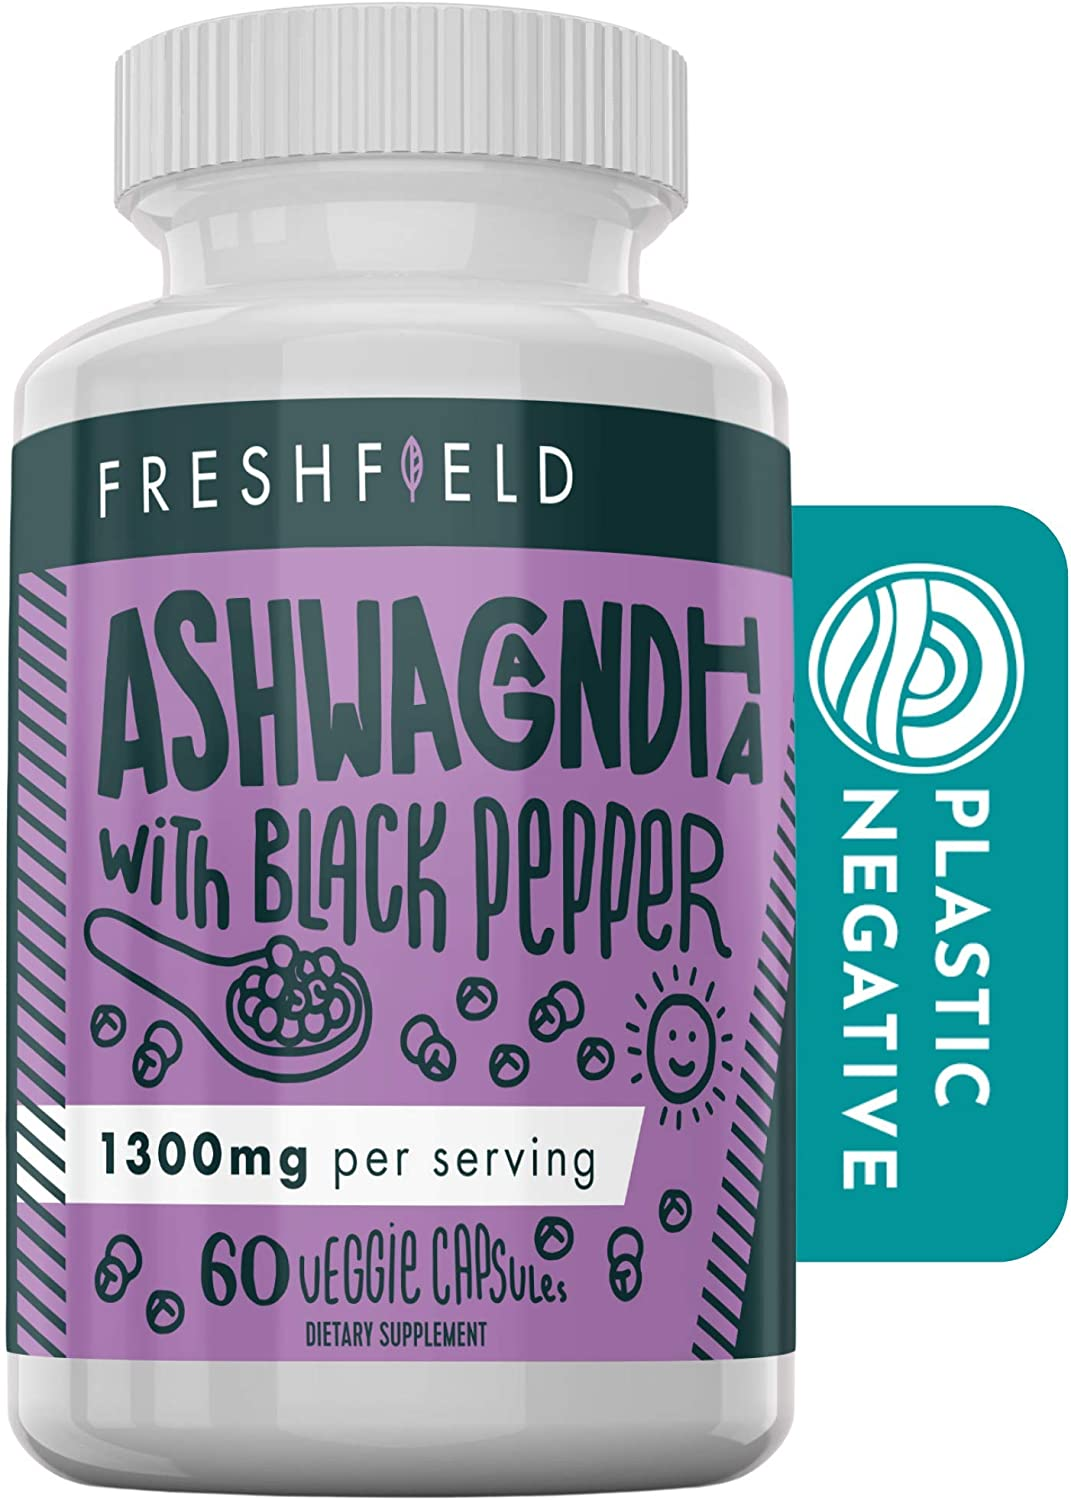 Freshfield Ashwagandha with Black Pepper. Vegan Friendly Supplement for Adrenal Fatigue Support, Muscle Memory, Anxiety, Thyroid and Strength. All Natural 1300mg Capsules